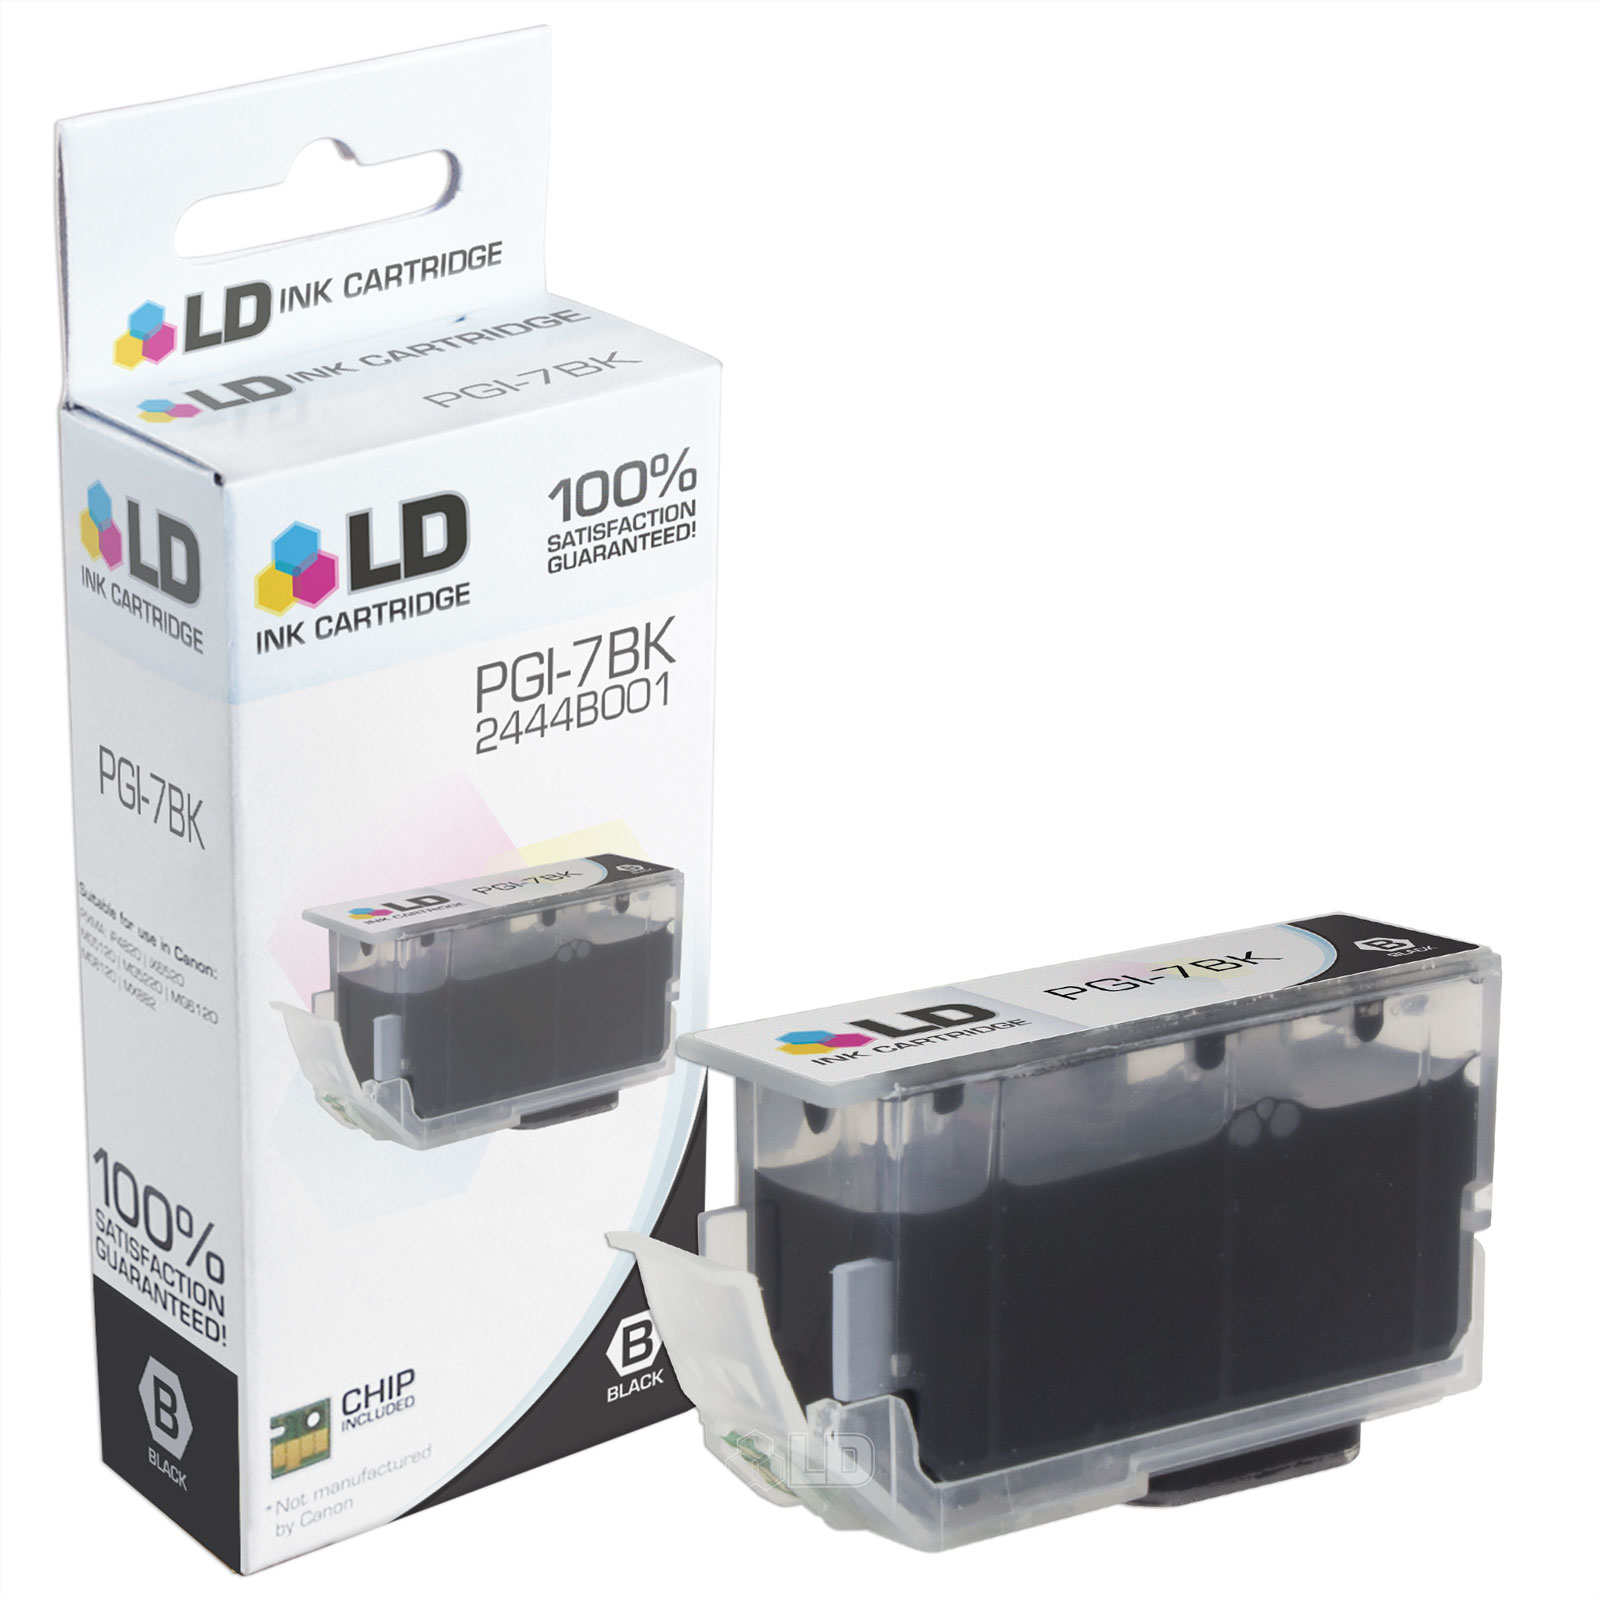 LD Compatible Canon PGI-7BK Black Ink Cartridge for iX7000, & MX7600